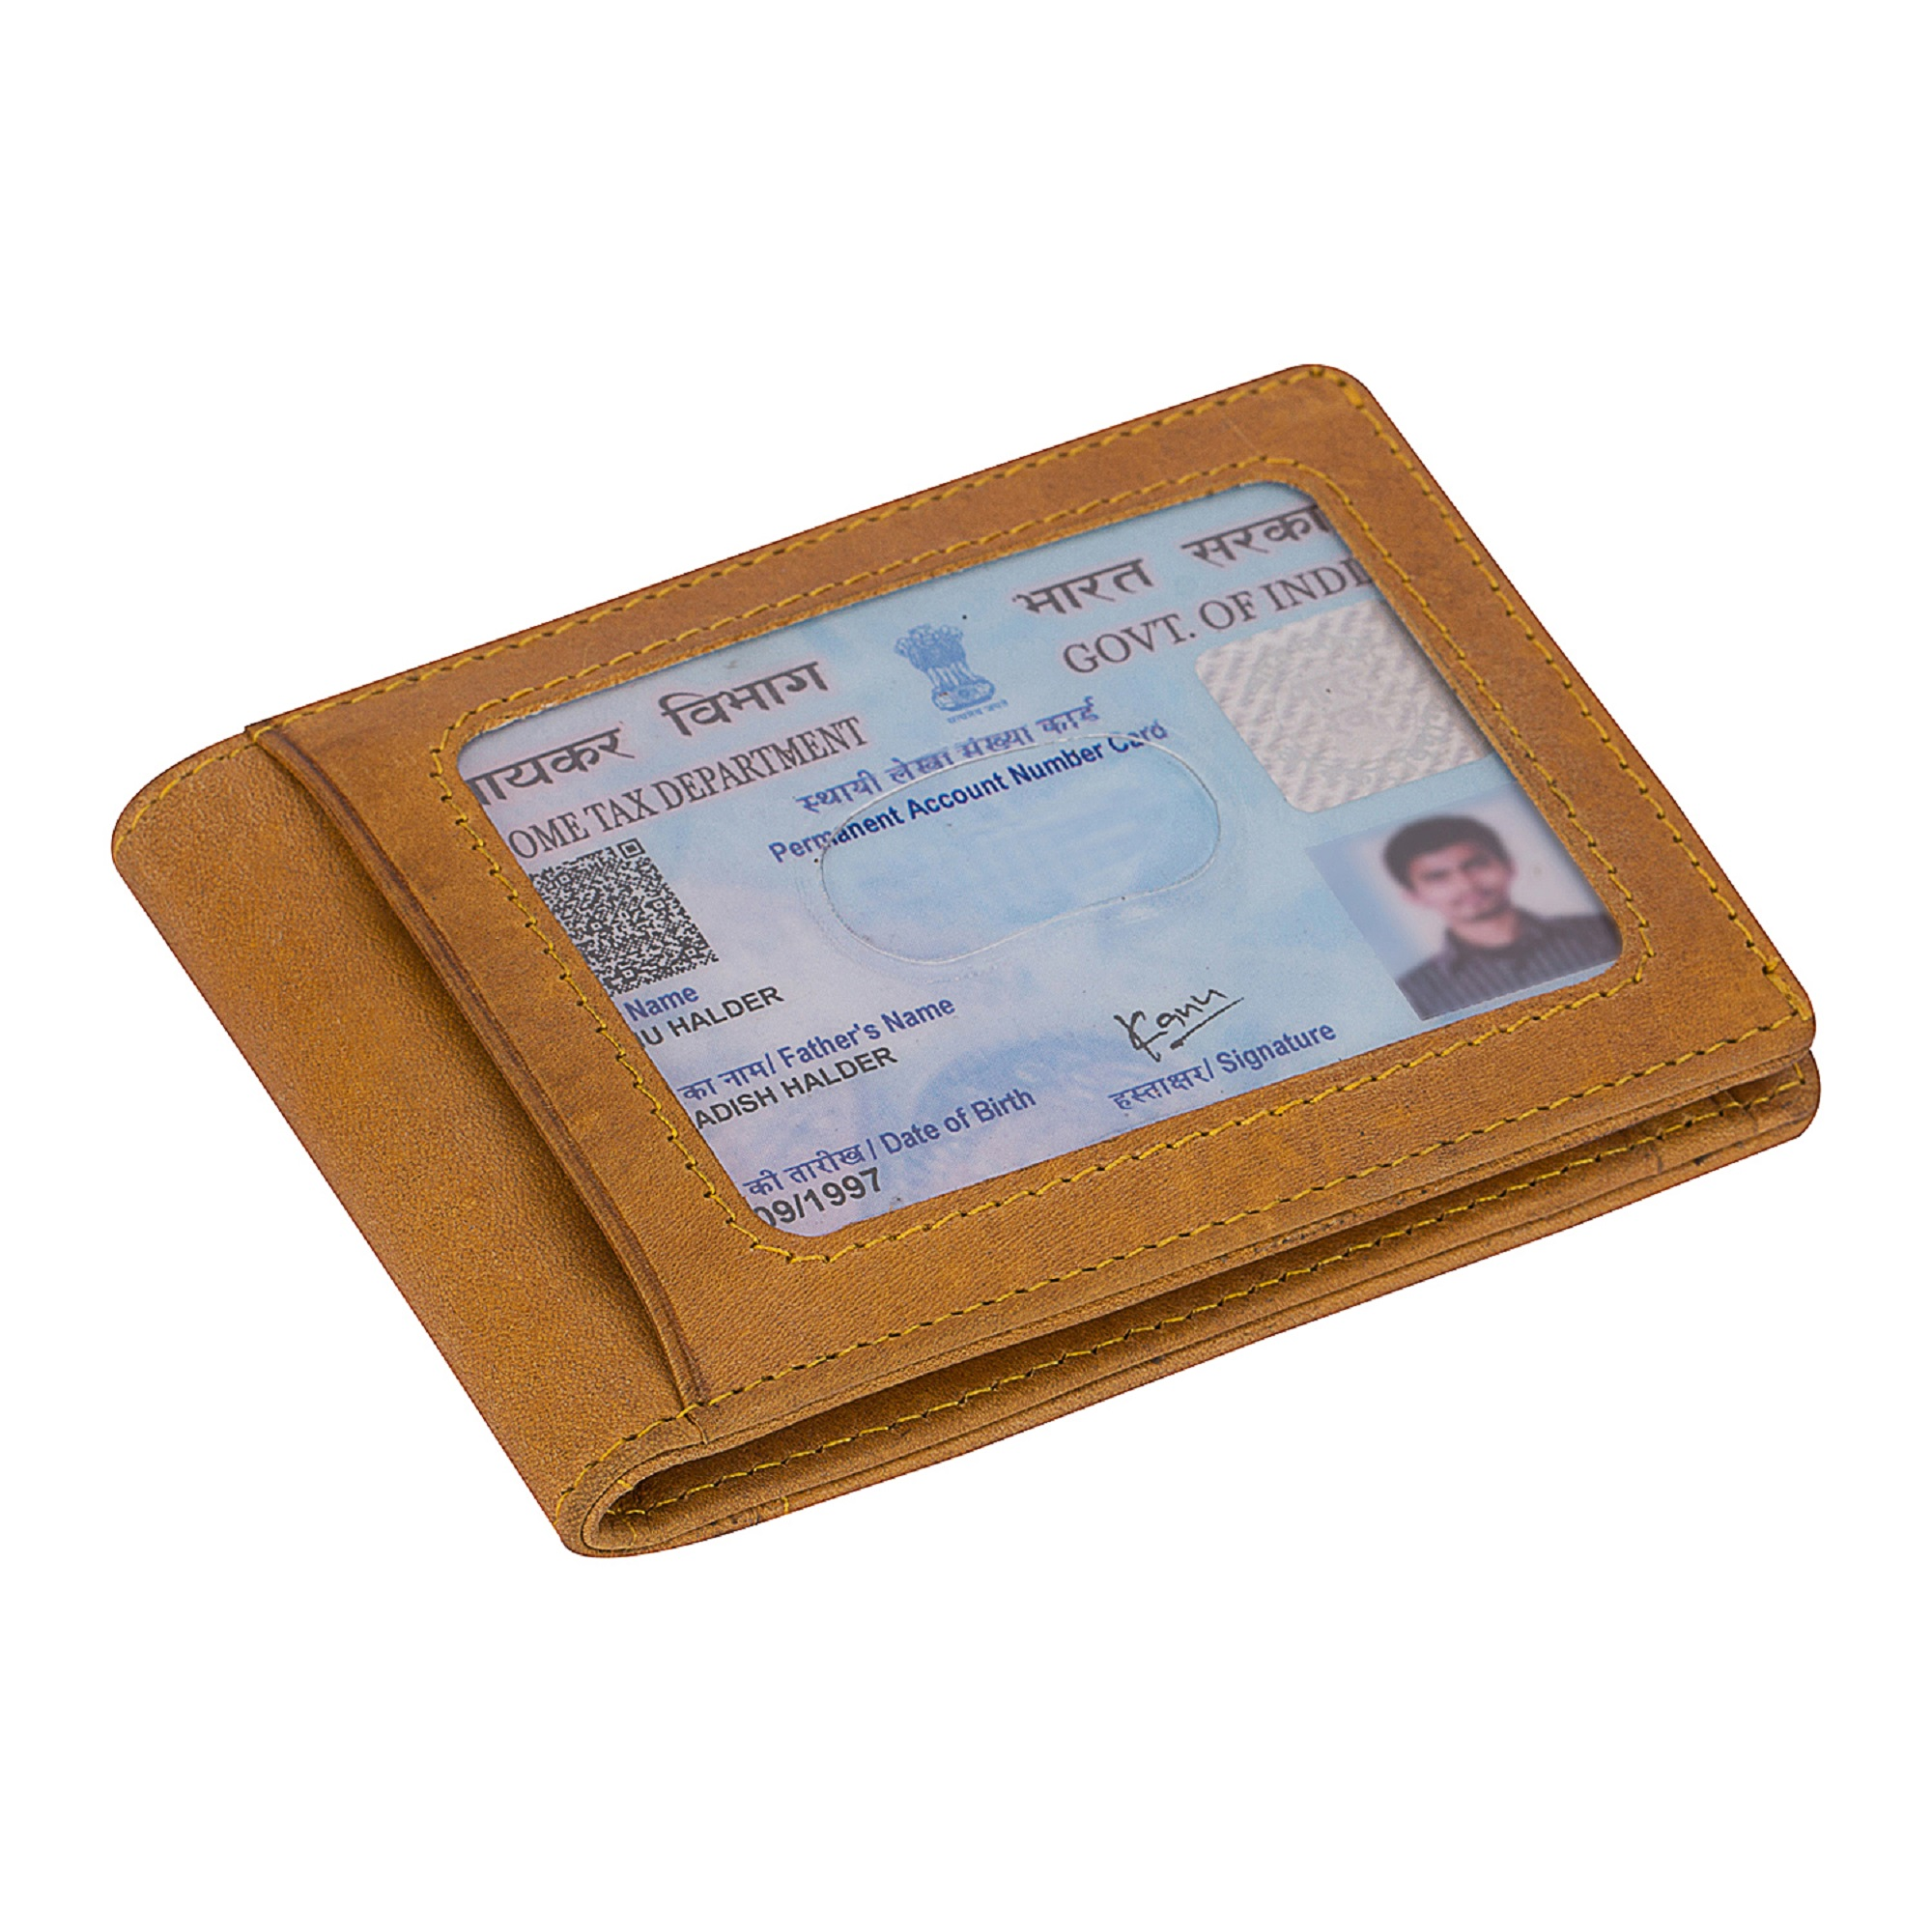 Leather Money Clip Wallet Manufacturers In Florida, Money Clip Wallet Suppliers In Florida, Money Clip Wallet Wholesalers In Florida, Money Clip Wallet Traders In Florida